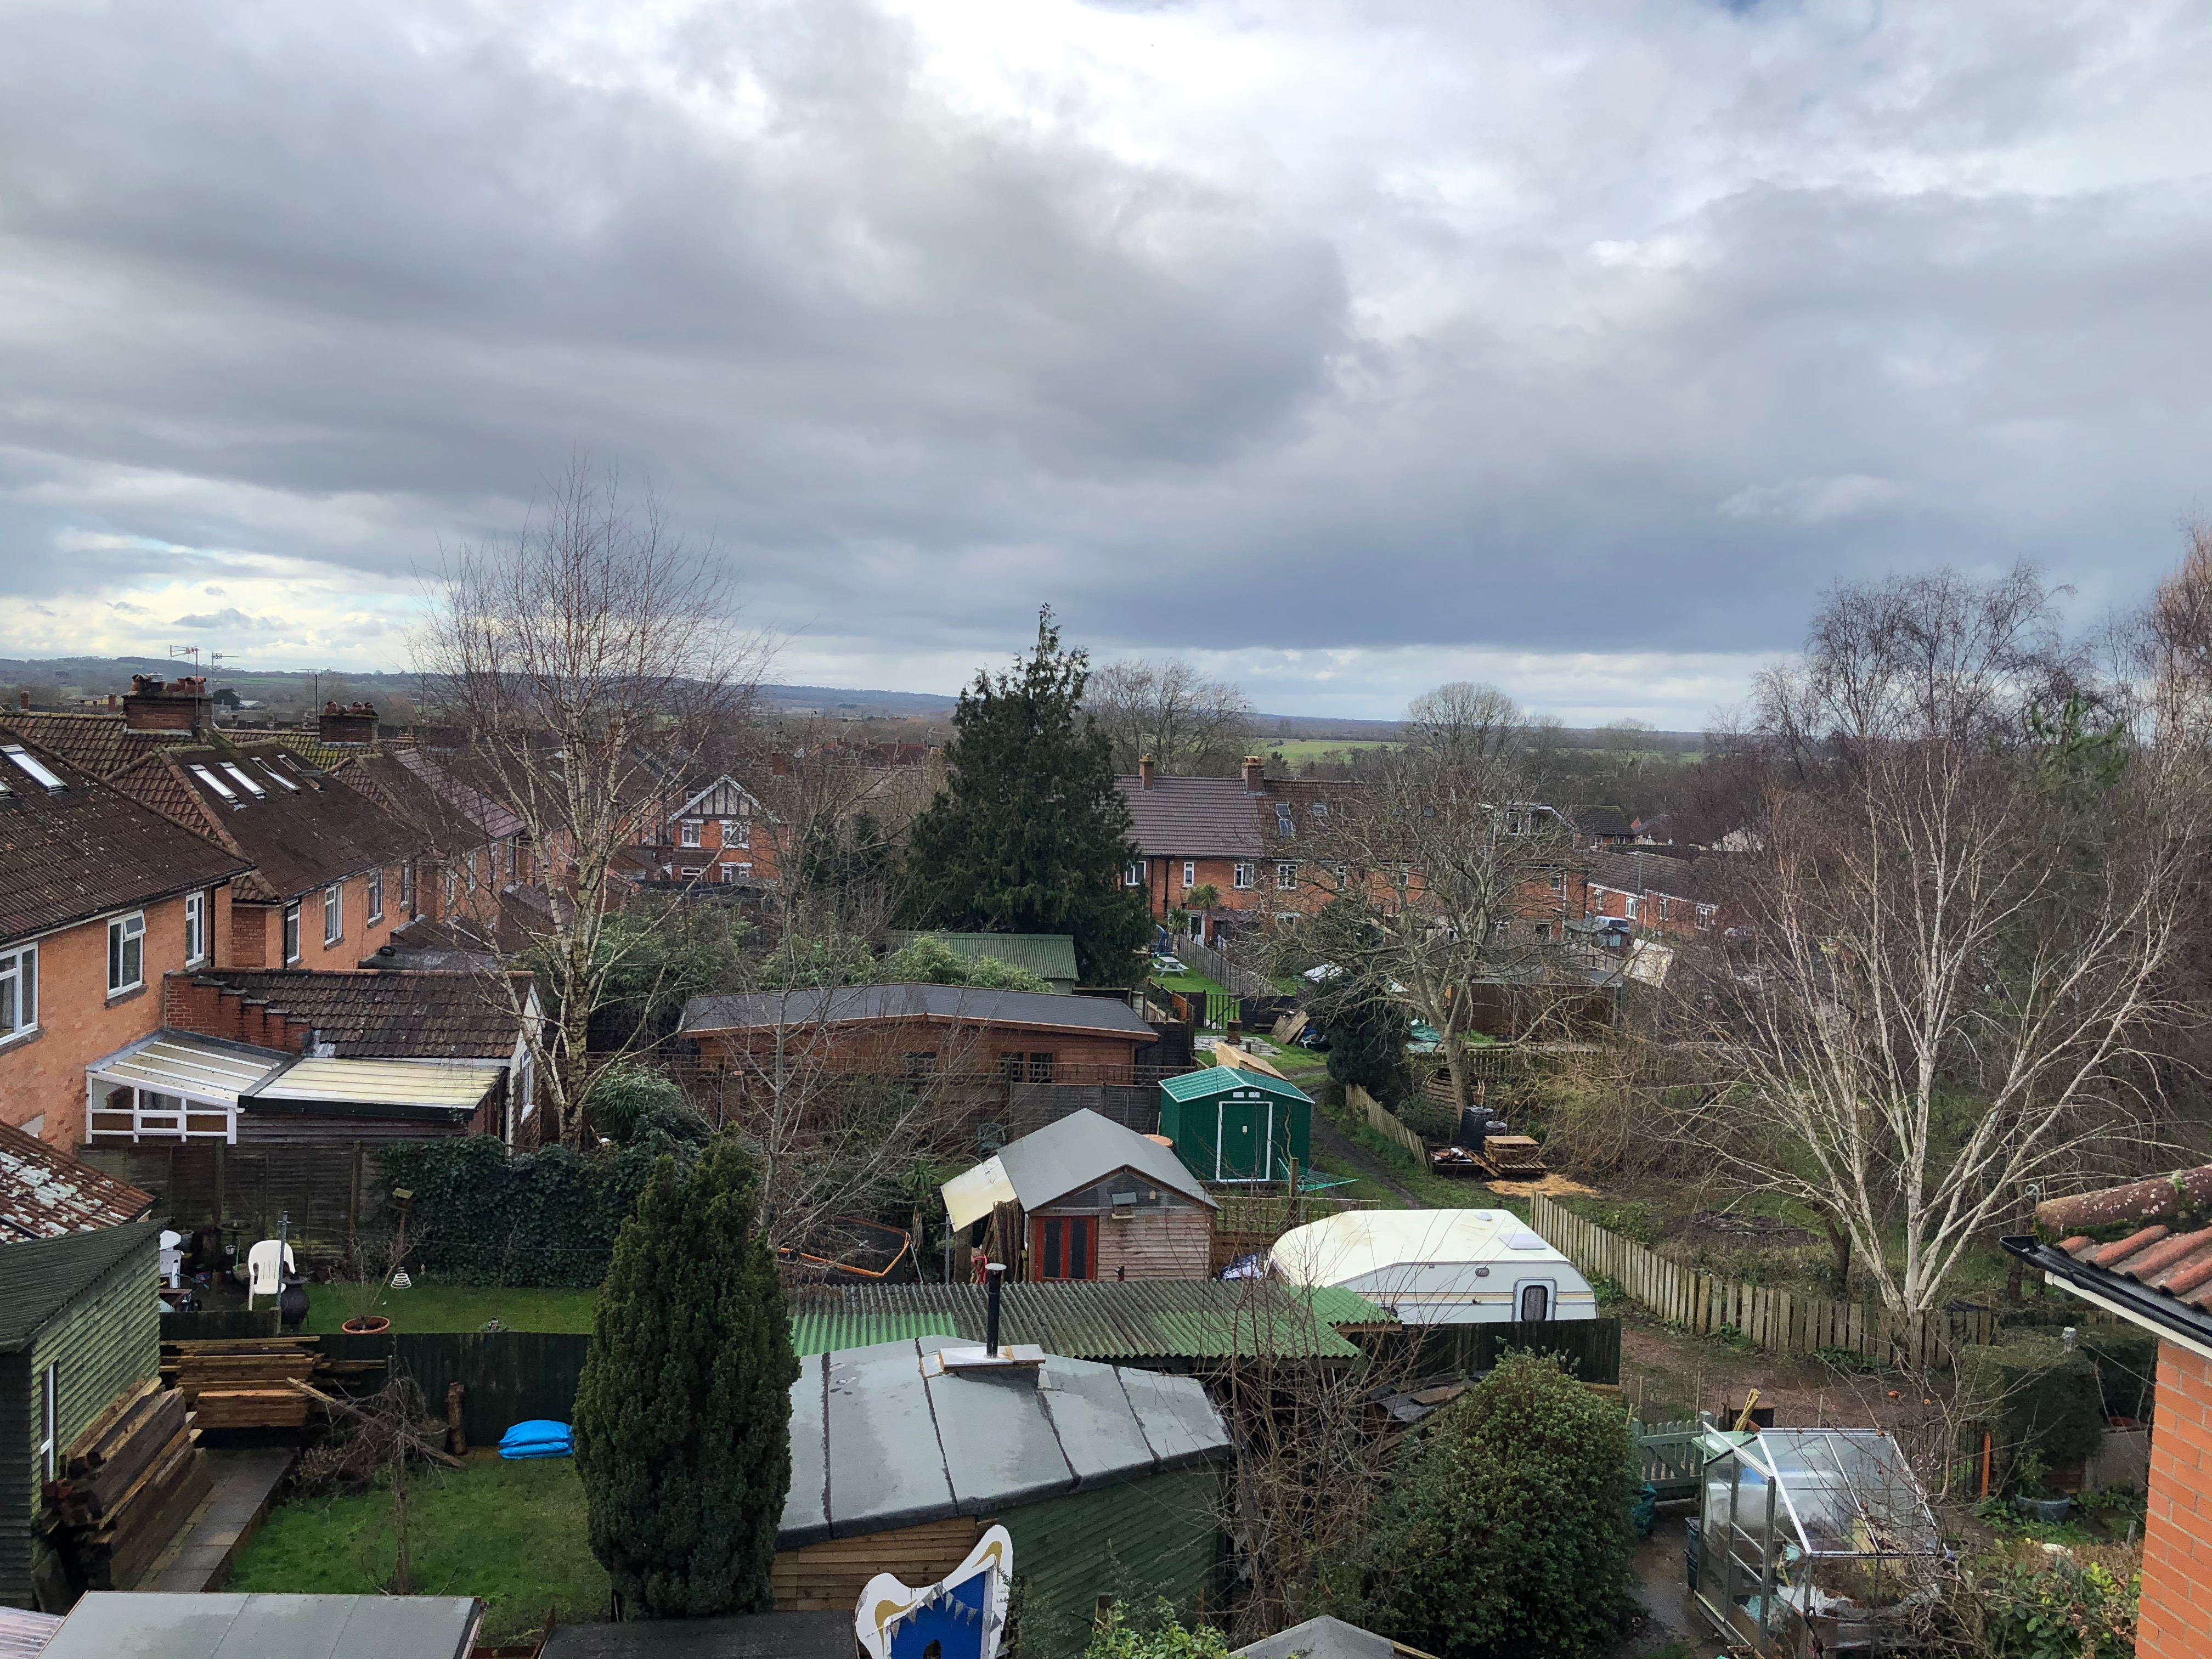 View 1 from Attic bedroom